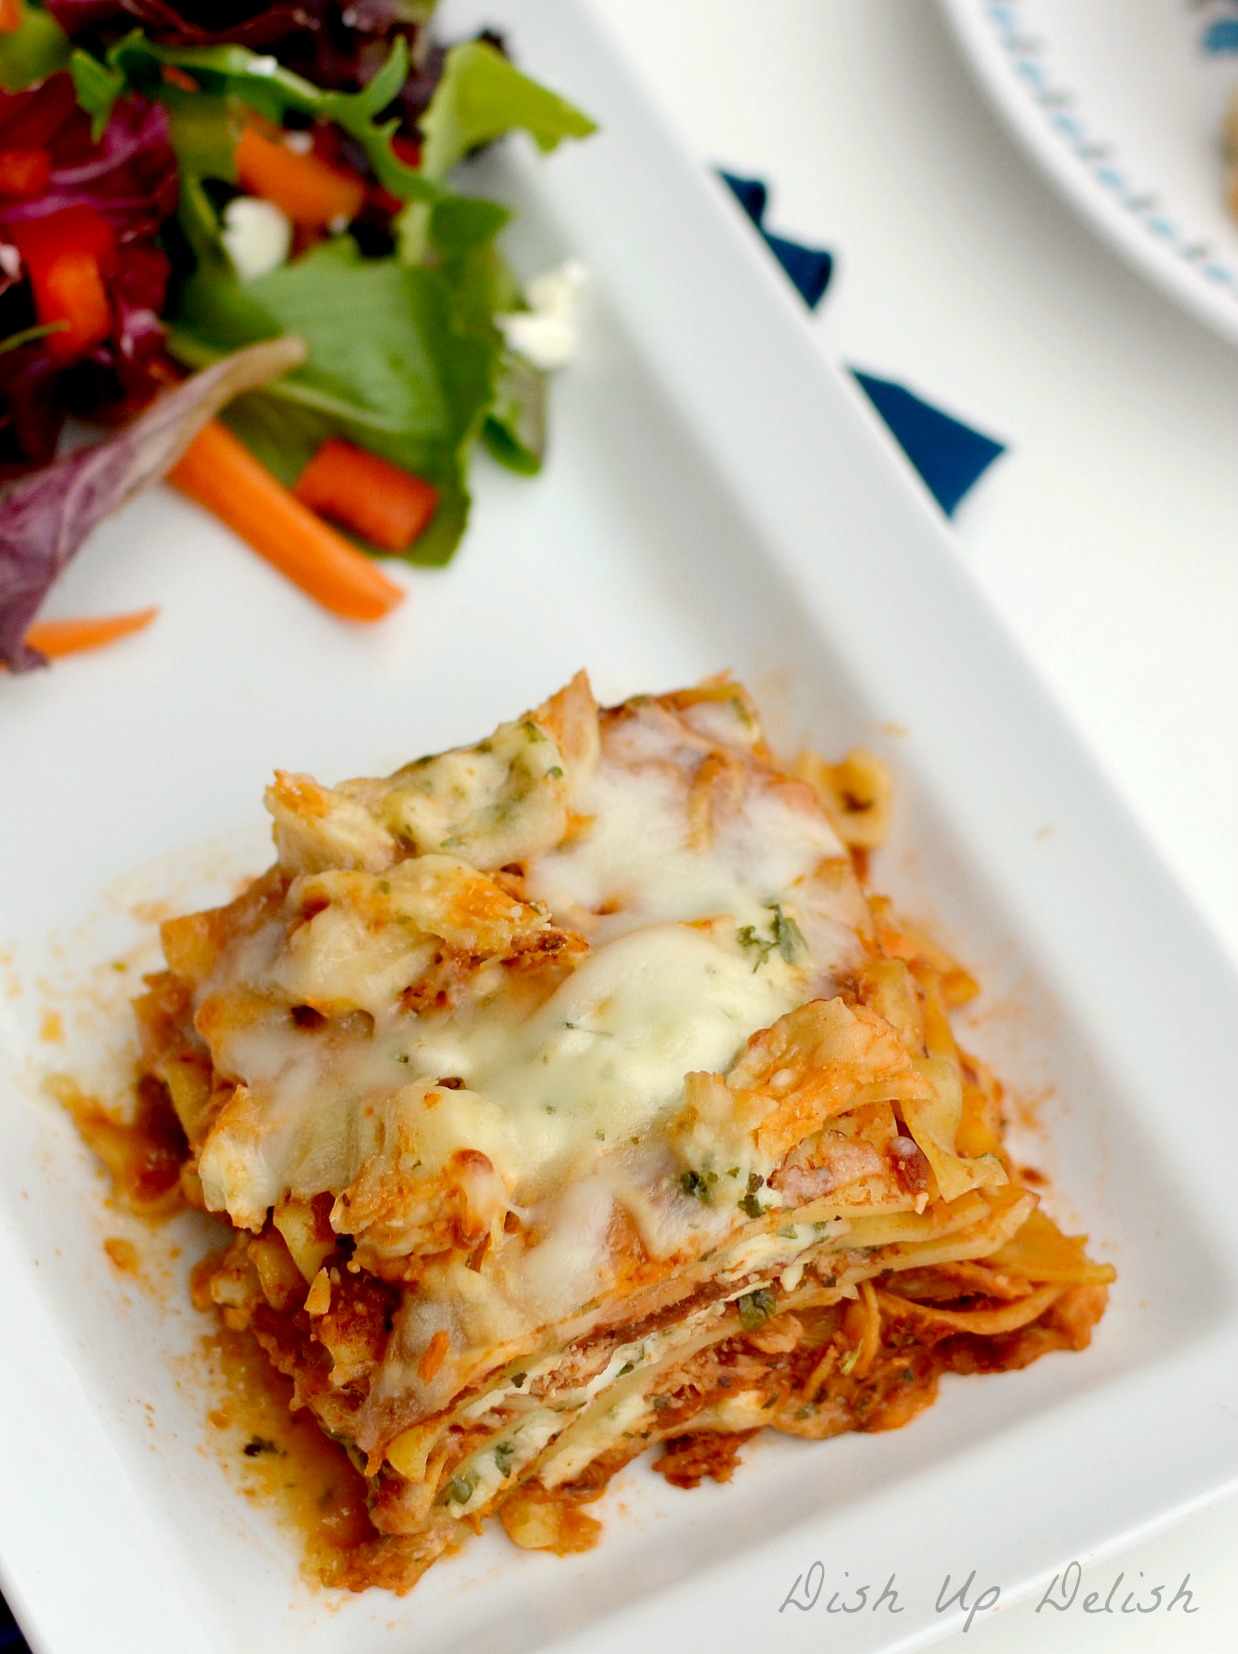 BBQ Chicken Lasagna Dish Up Delish